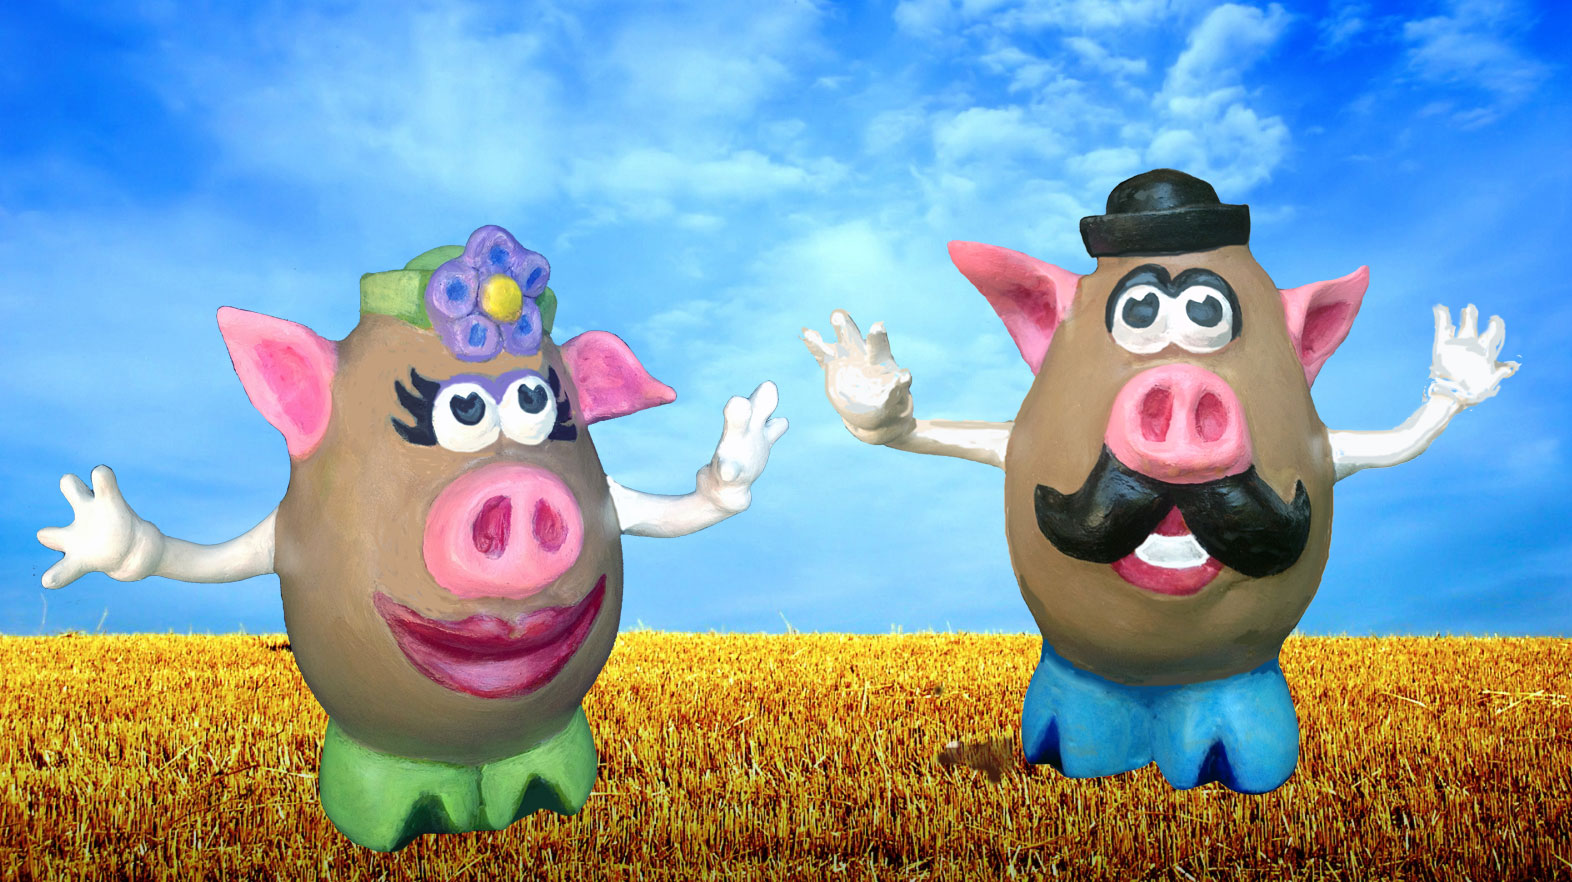 Mr. and Mrs. Pigtato Head in a Field